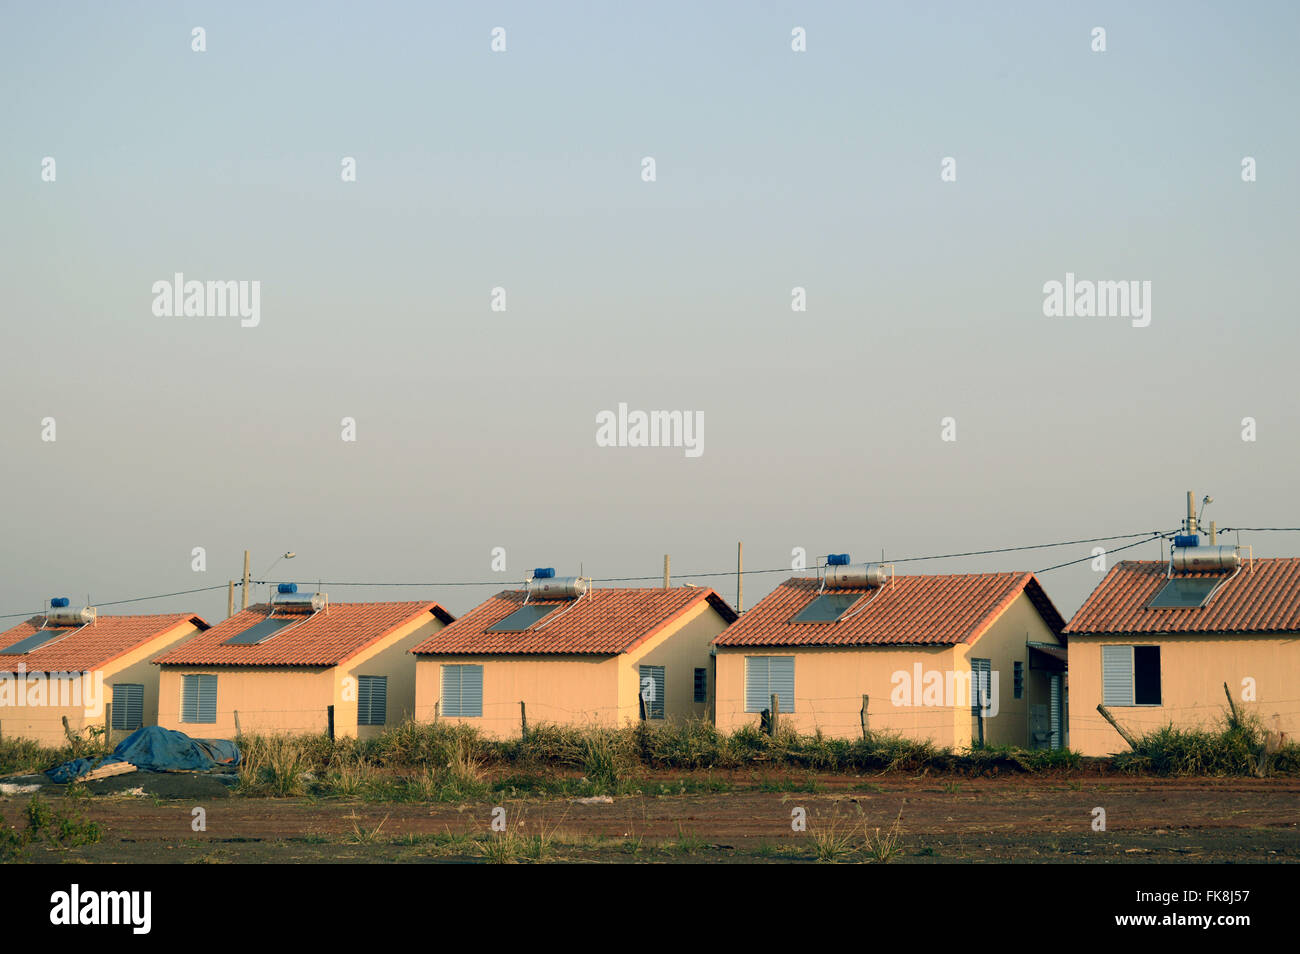 Housing affordable housing with solar heating - Stock Image